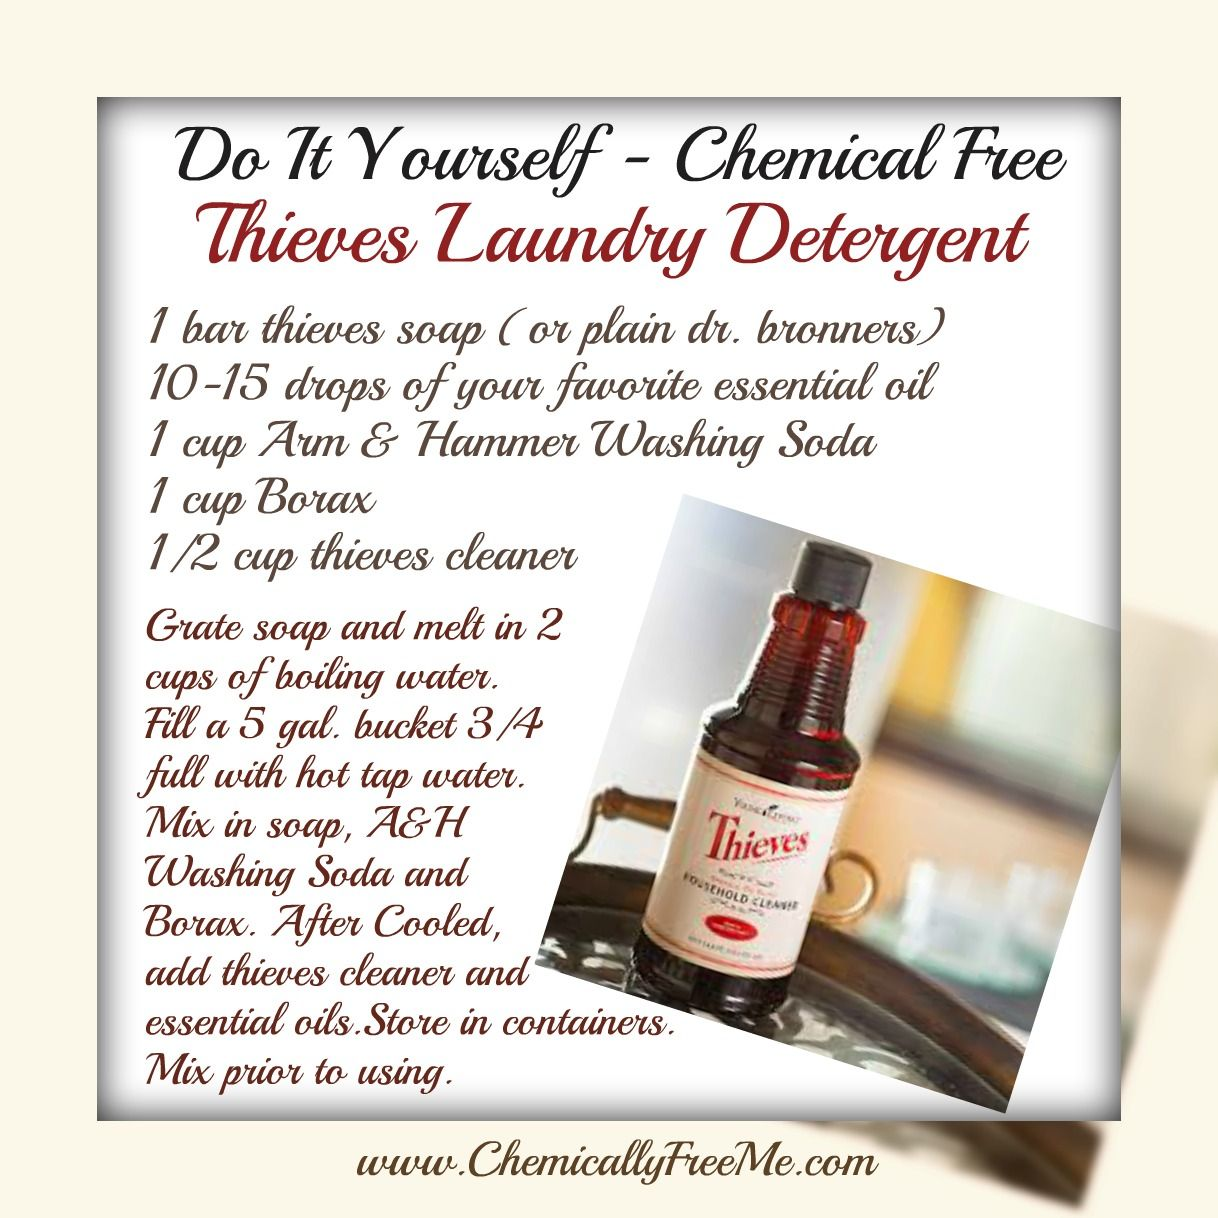 Diy Chemically Free Thieves Laundry Detergent Laundry Detergent